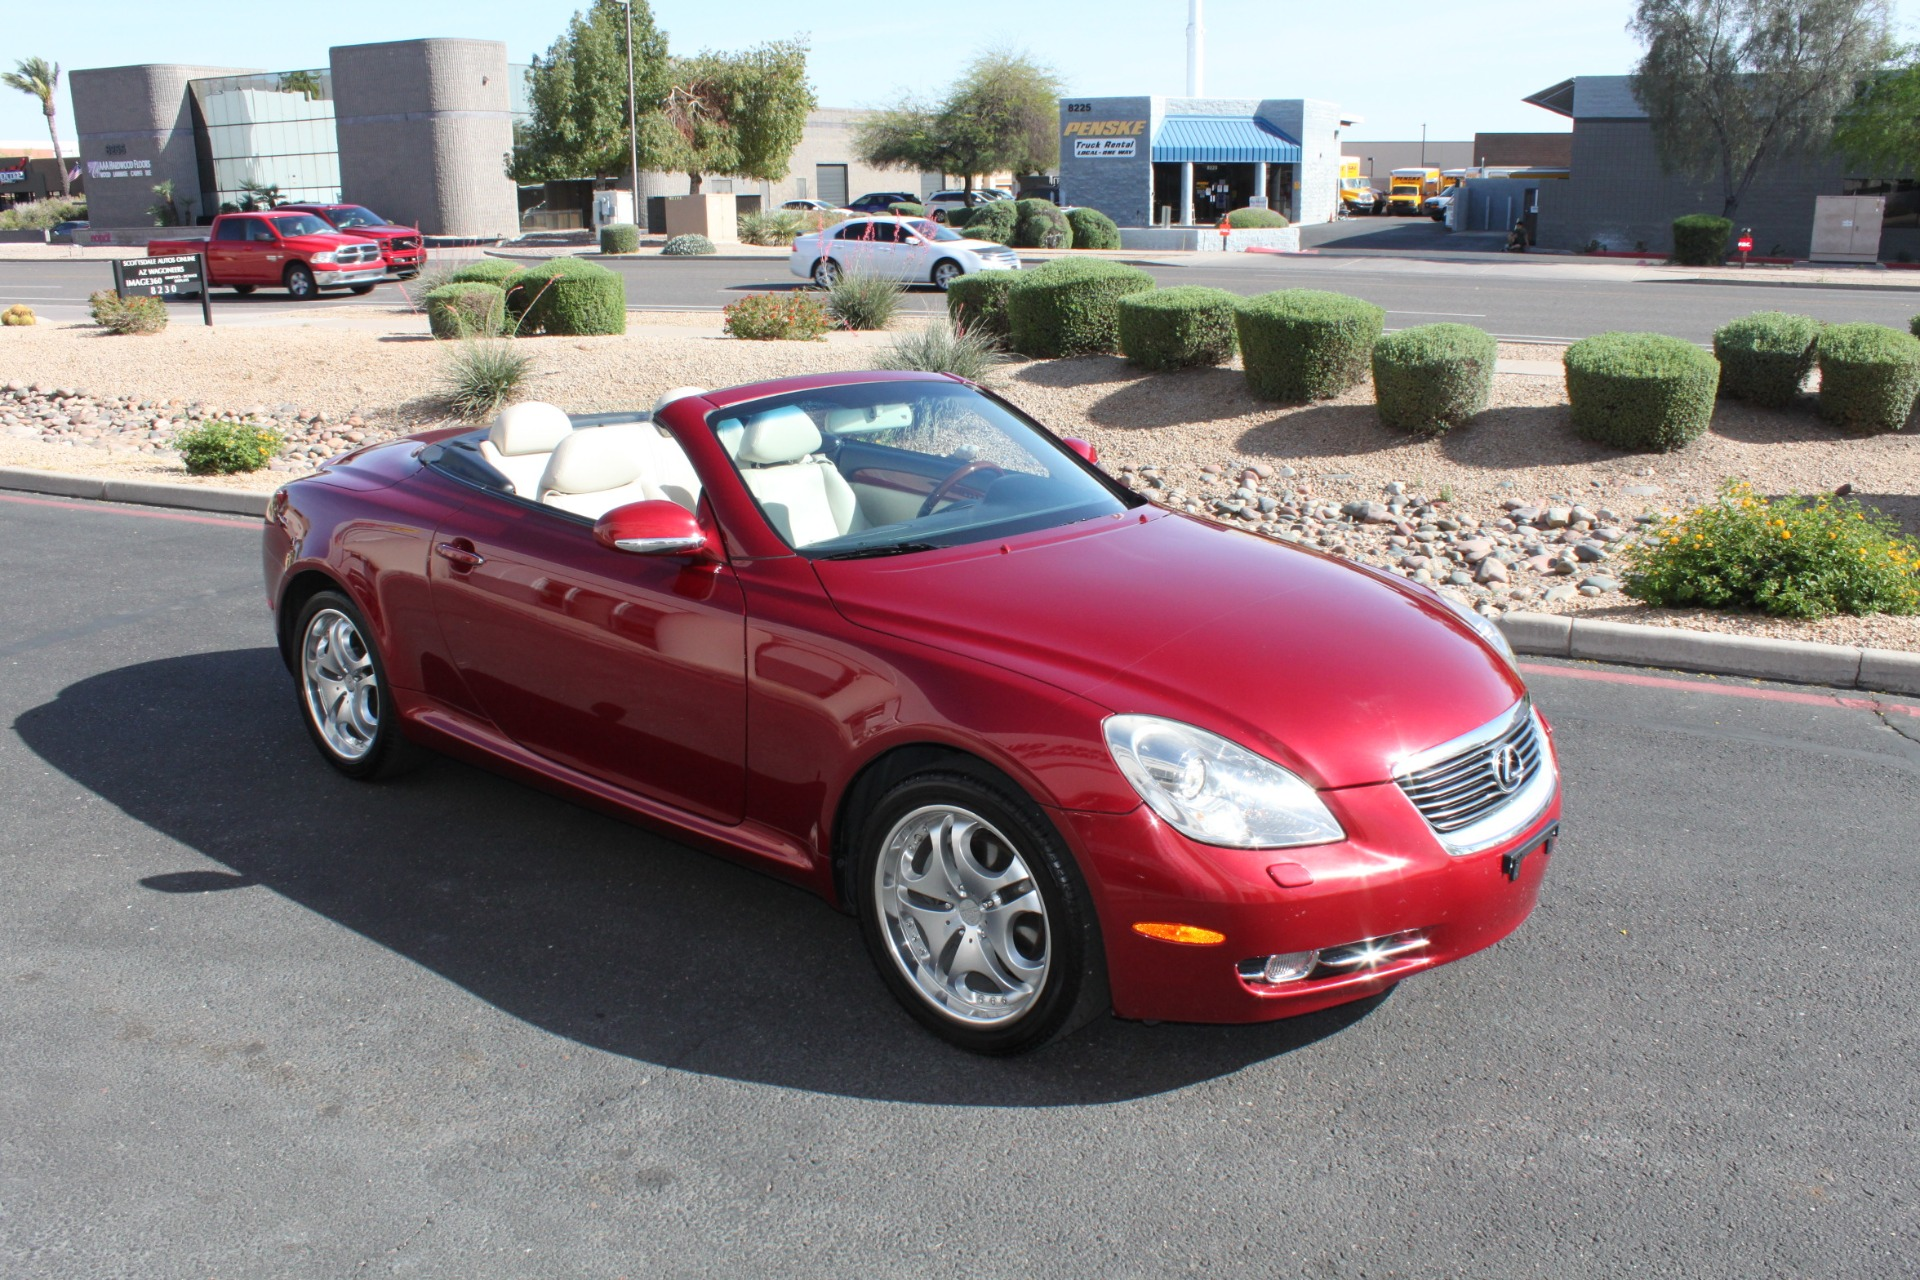 Used-2006-Lexus-SC-430-Land-Cruiser